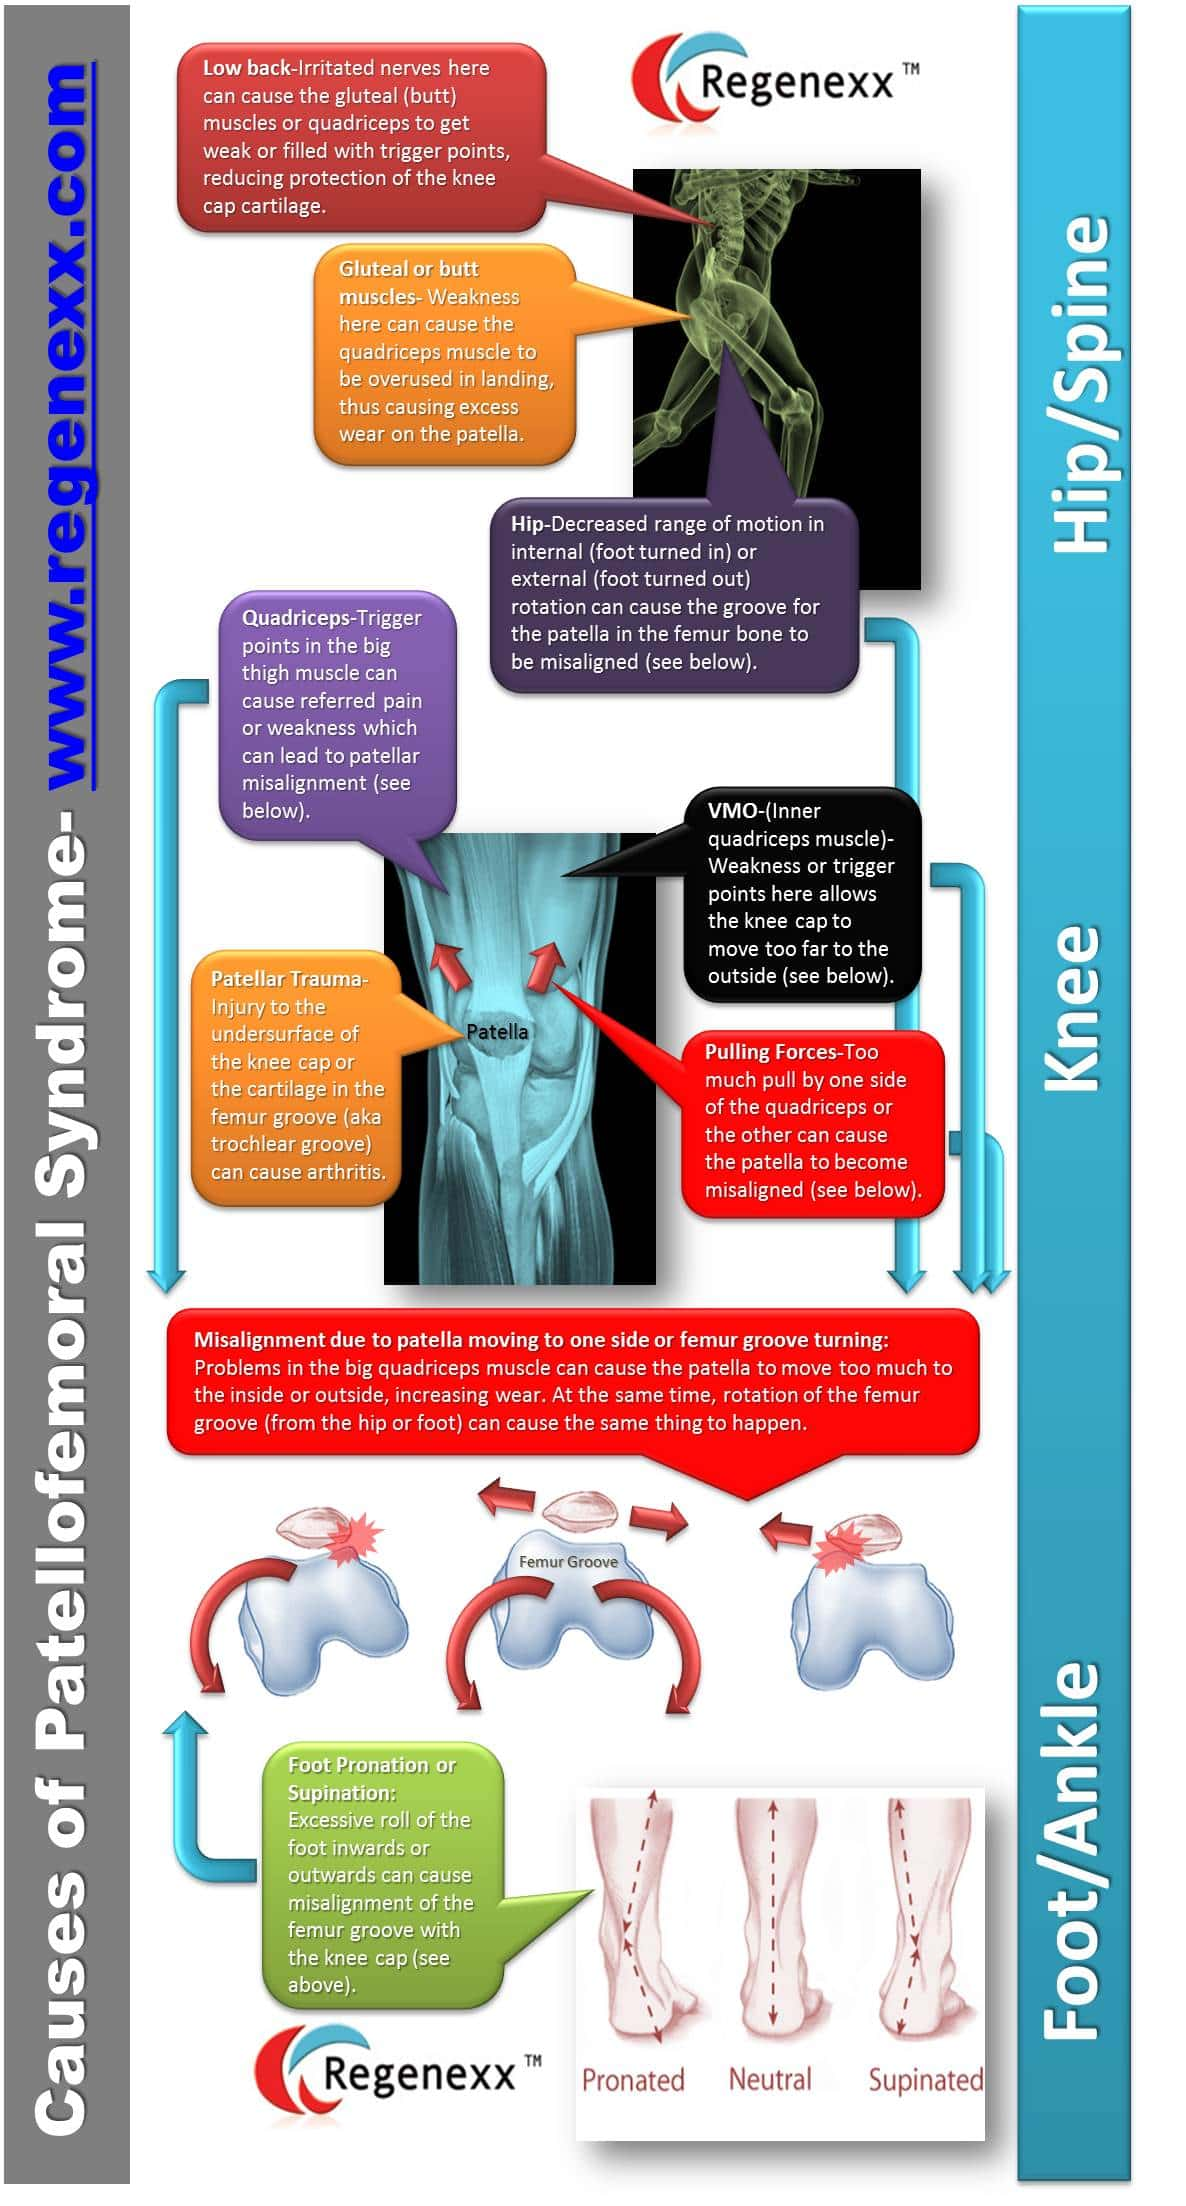 patellofemoral pain syndrome infographic